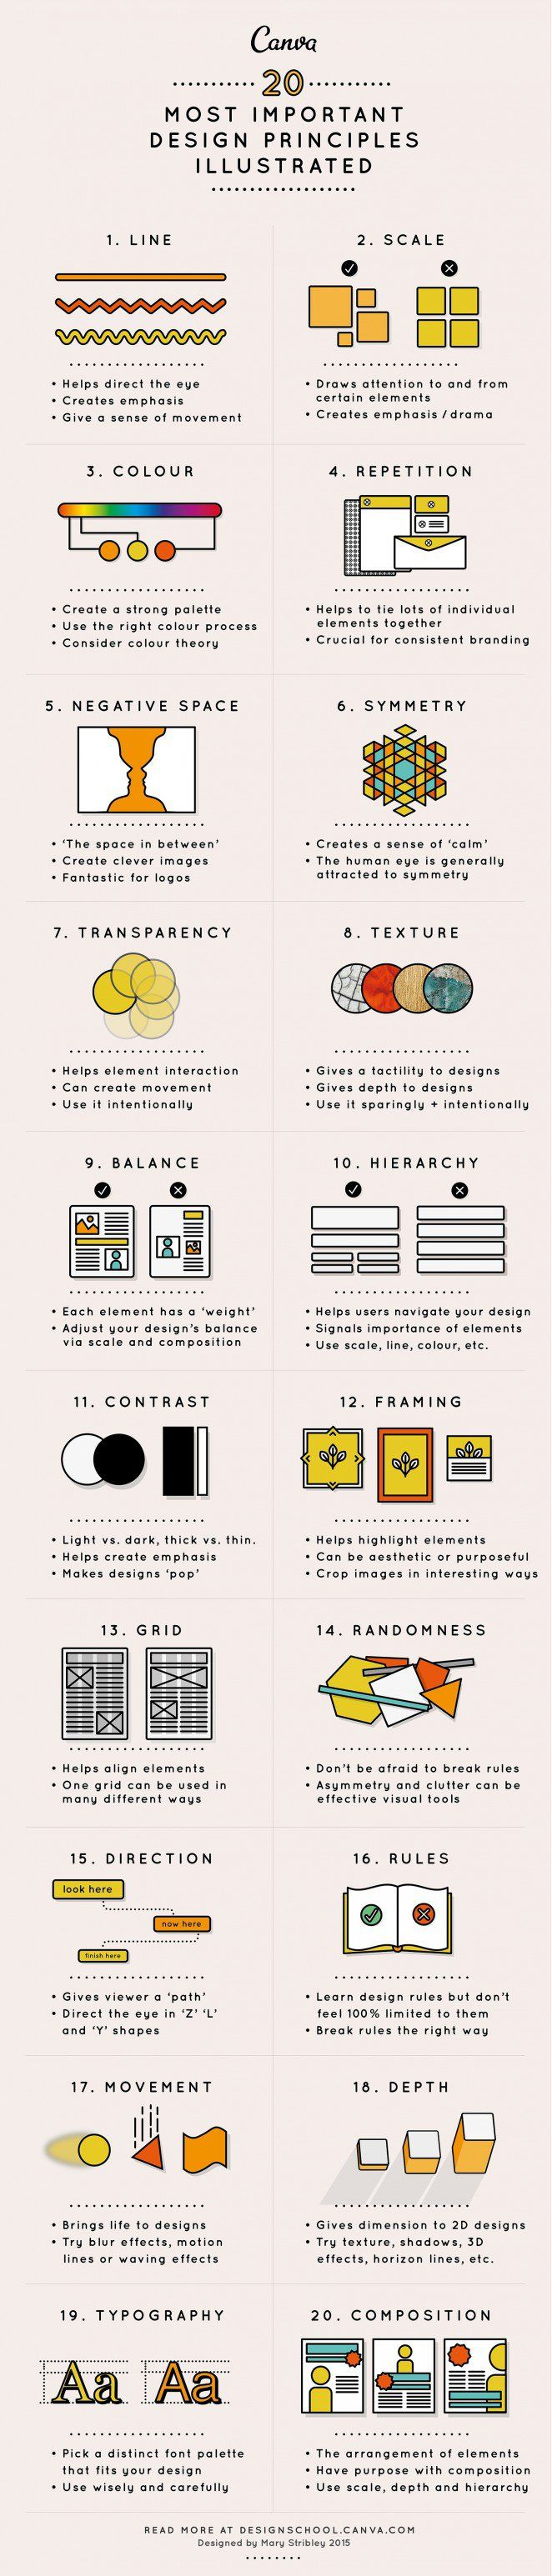 20 Basic Design Principles to Follow for a Successful Business Website [Infographic] - @redwebdesign